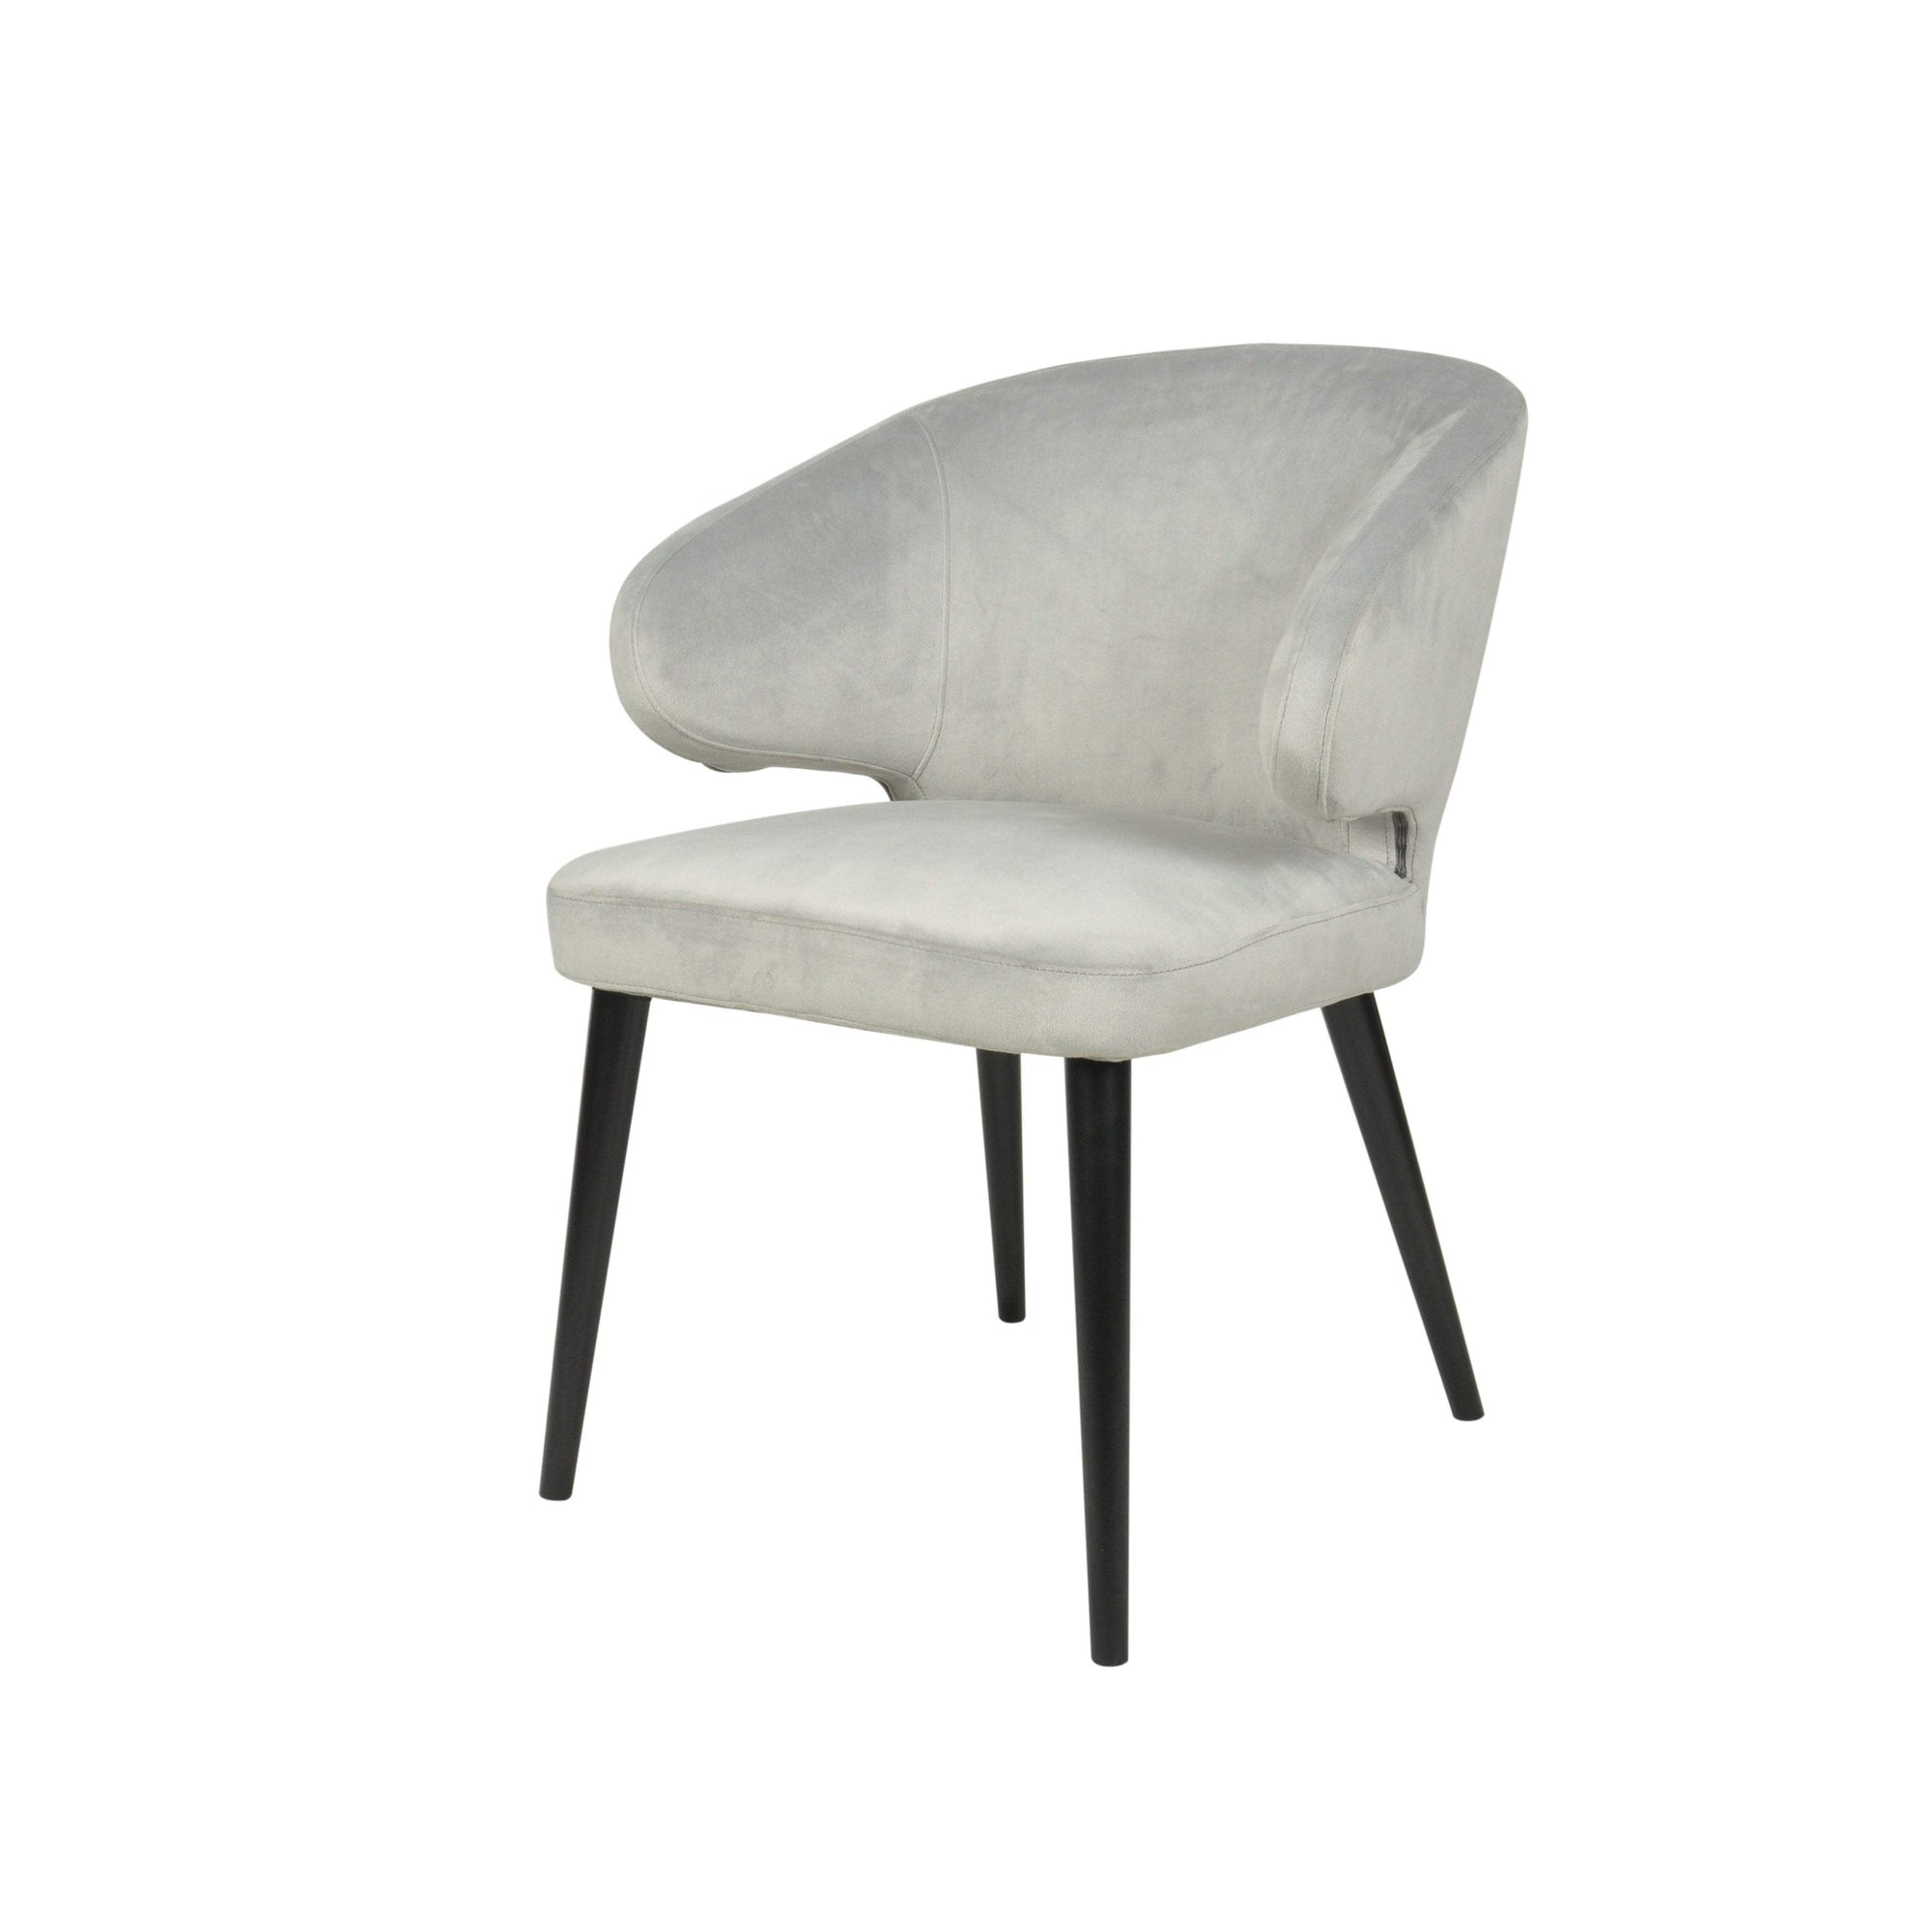 Harlow Dining Chair - Grey Velvet